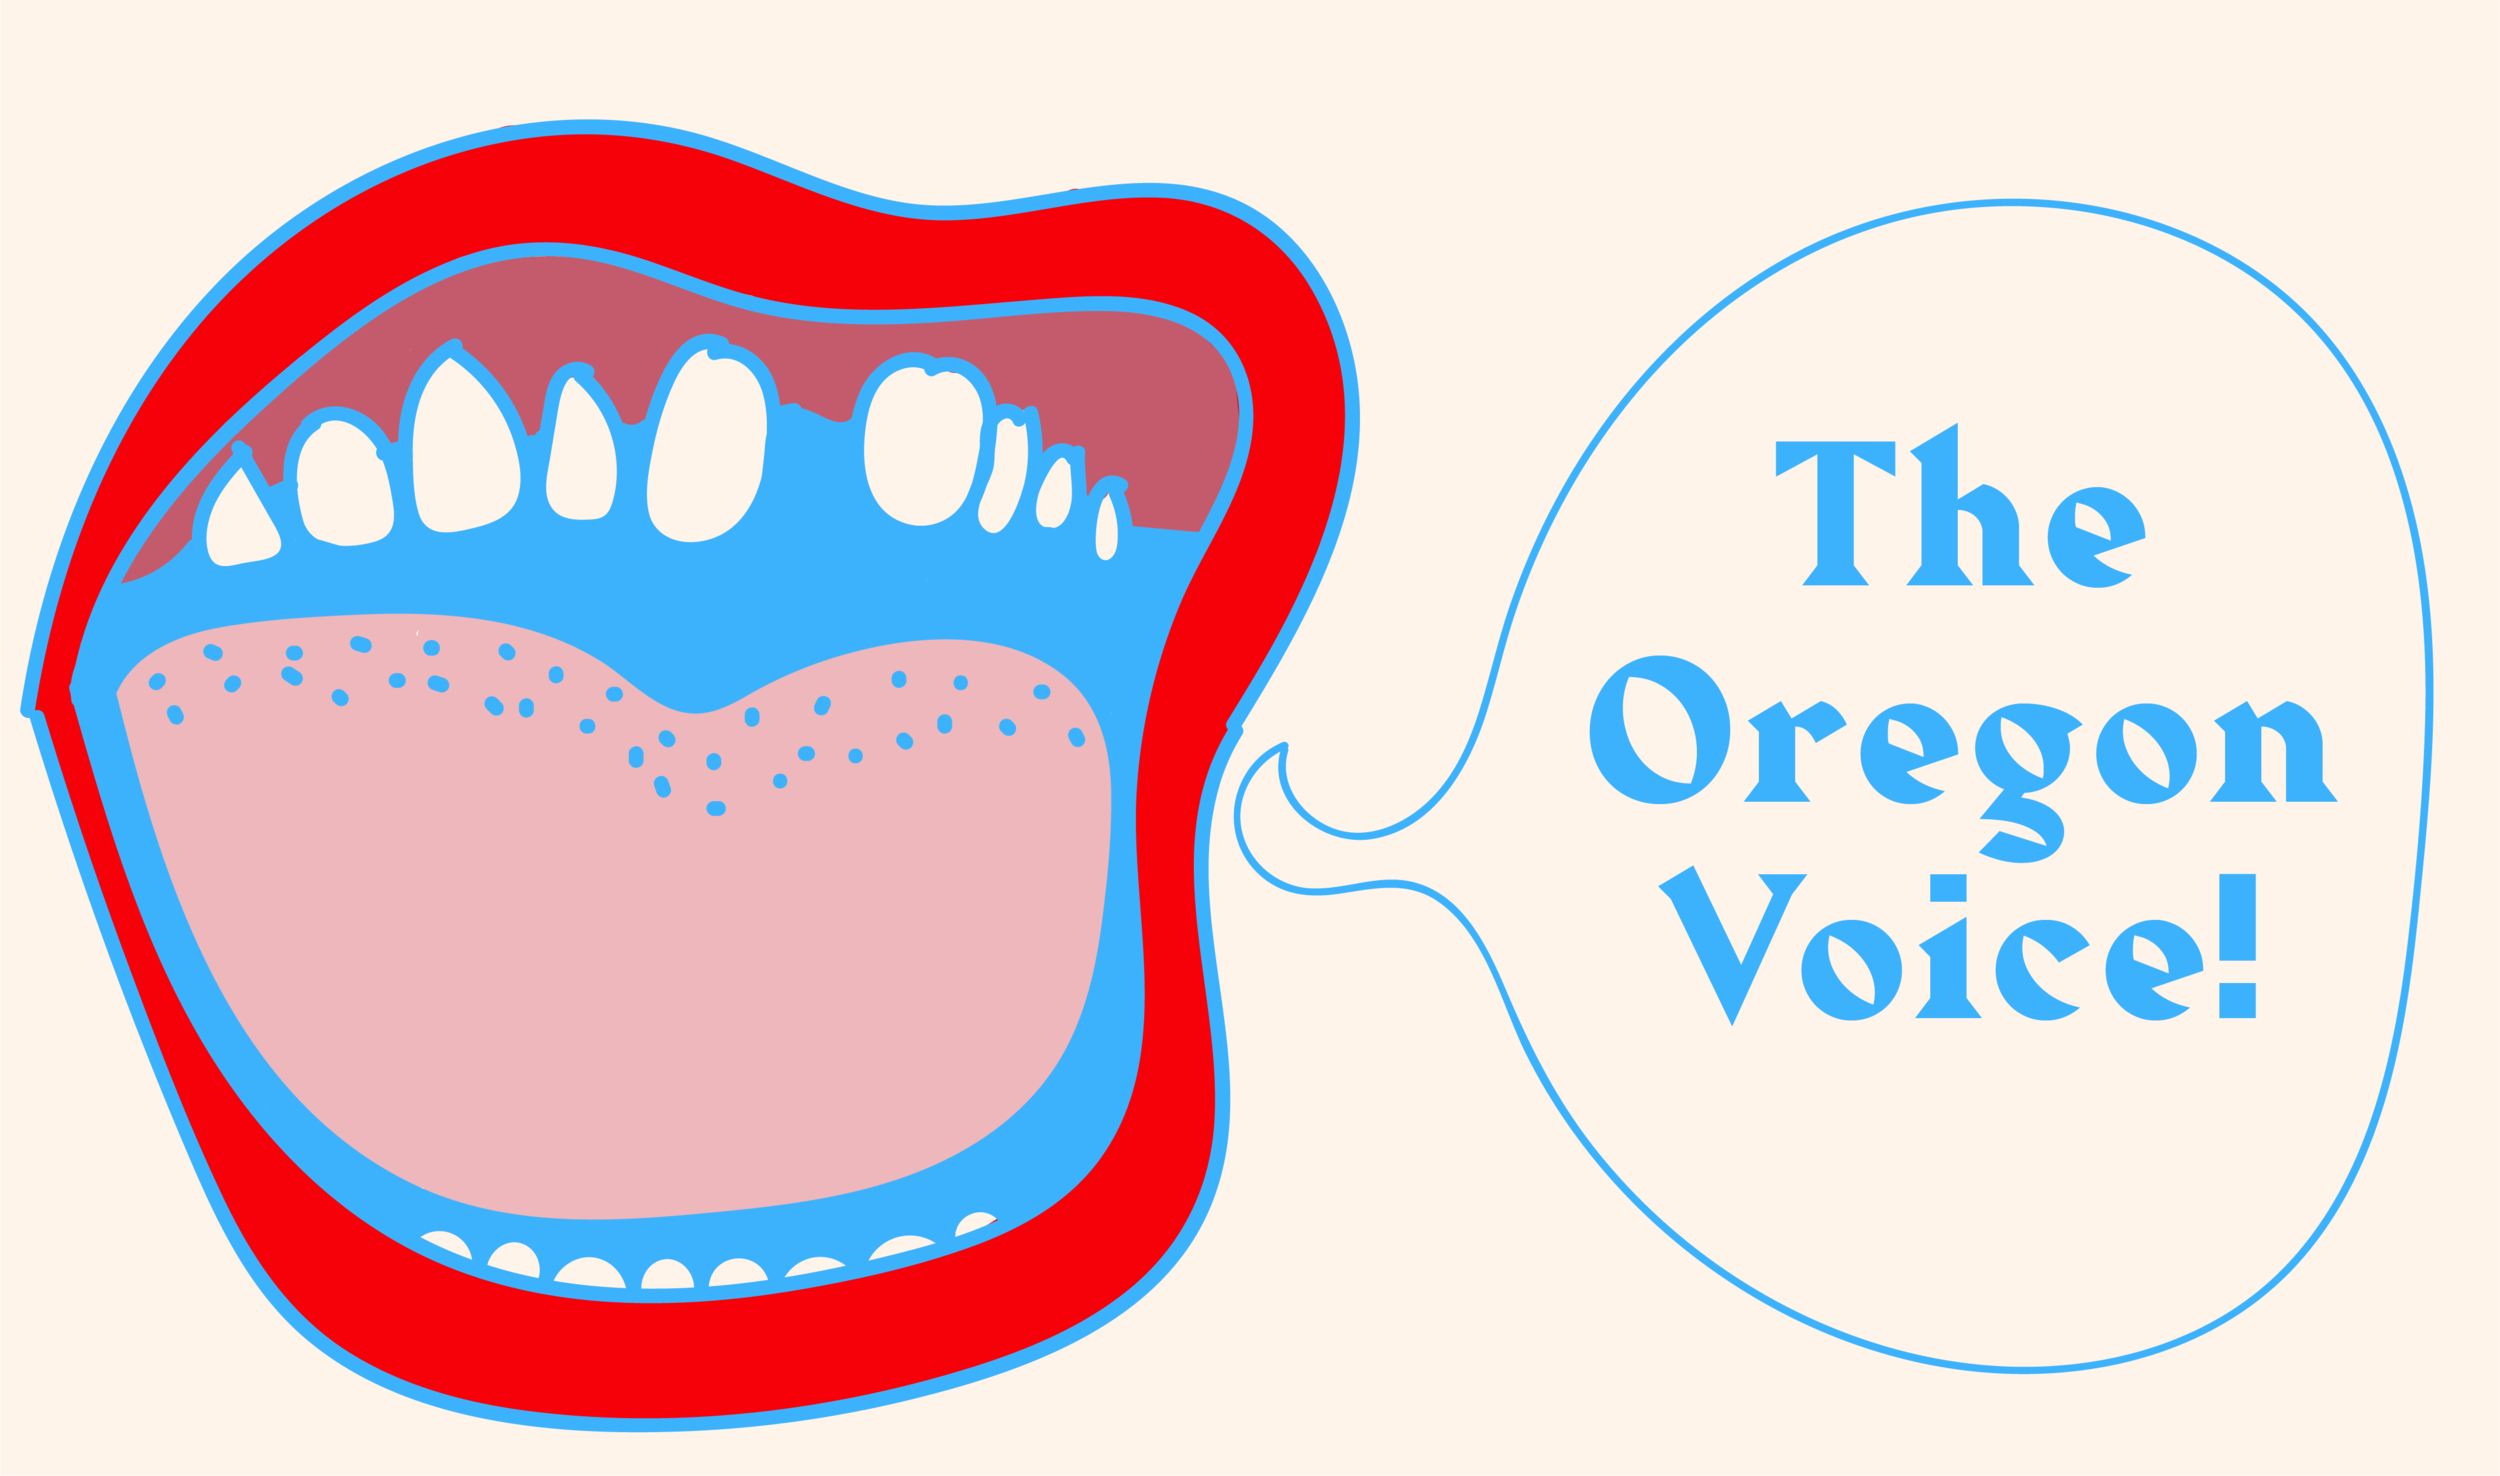 TheOregonVoice.png